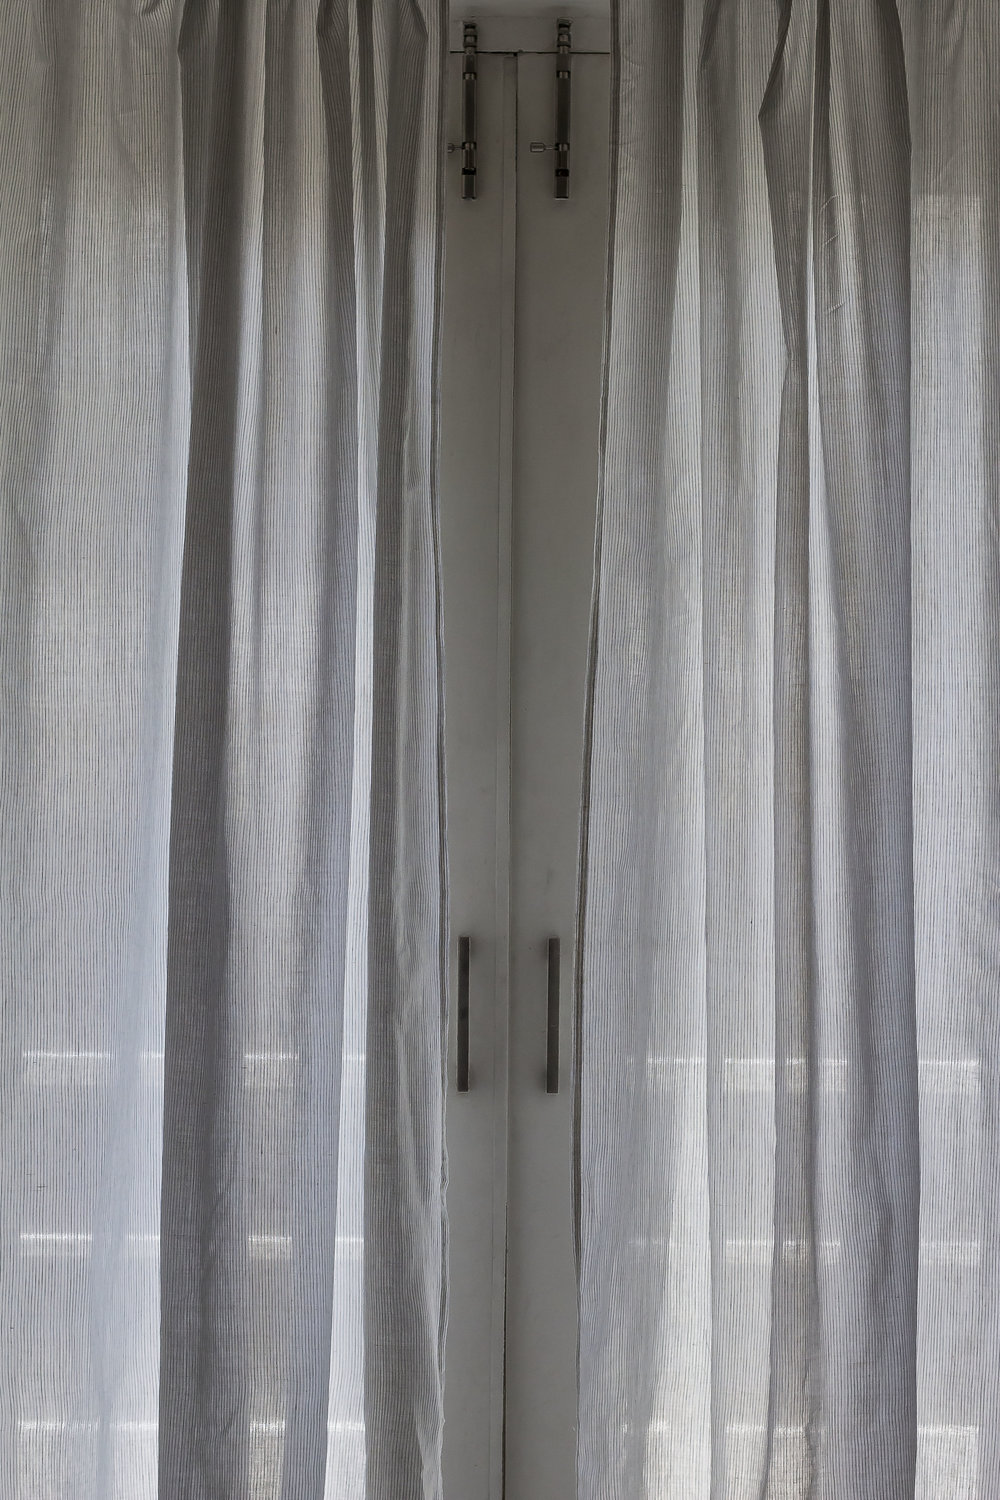 The Curtains -